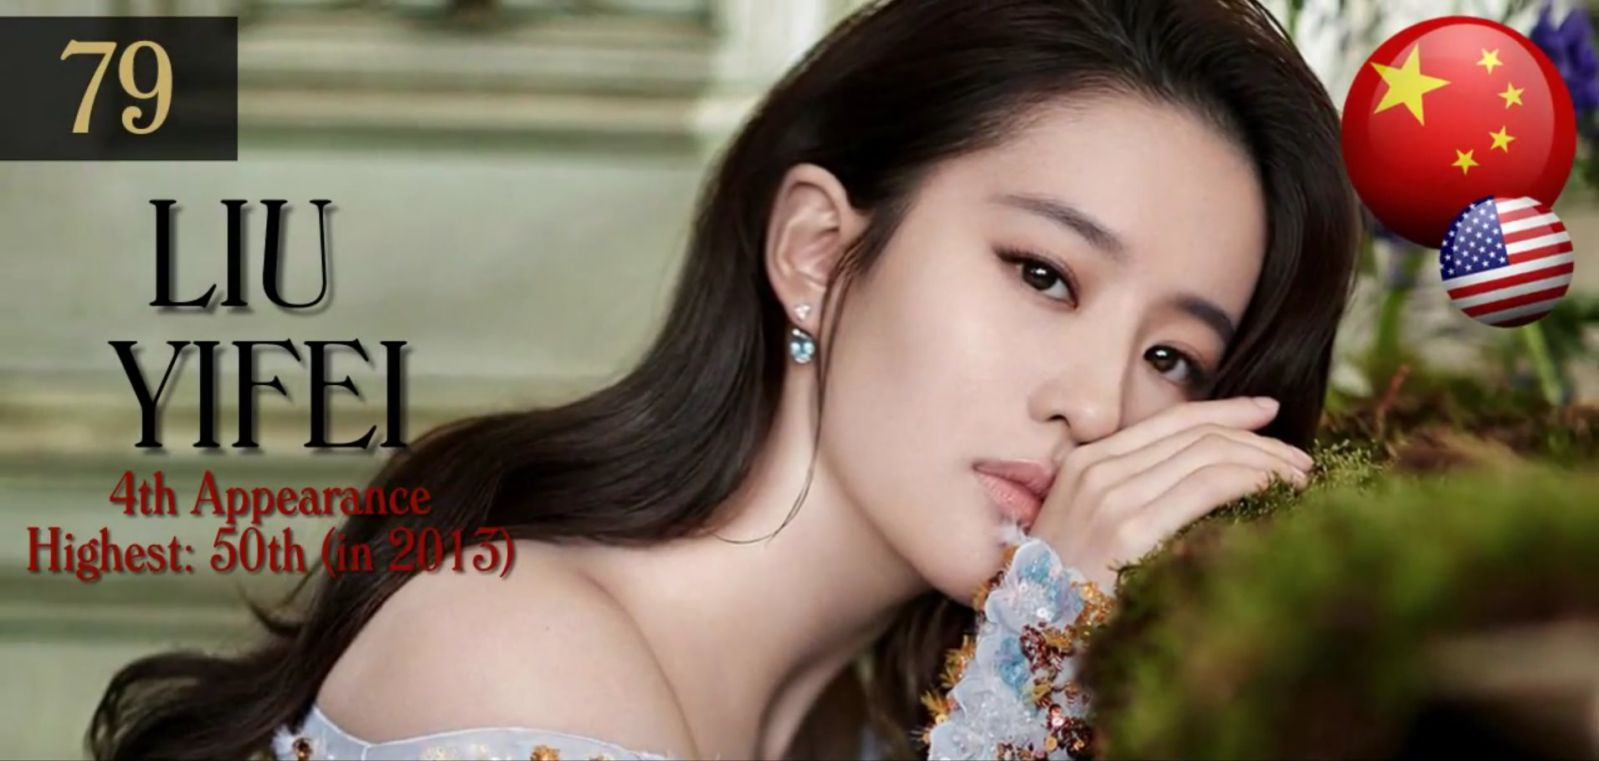 the-100-most-beautiful-faces-2016 (79)s